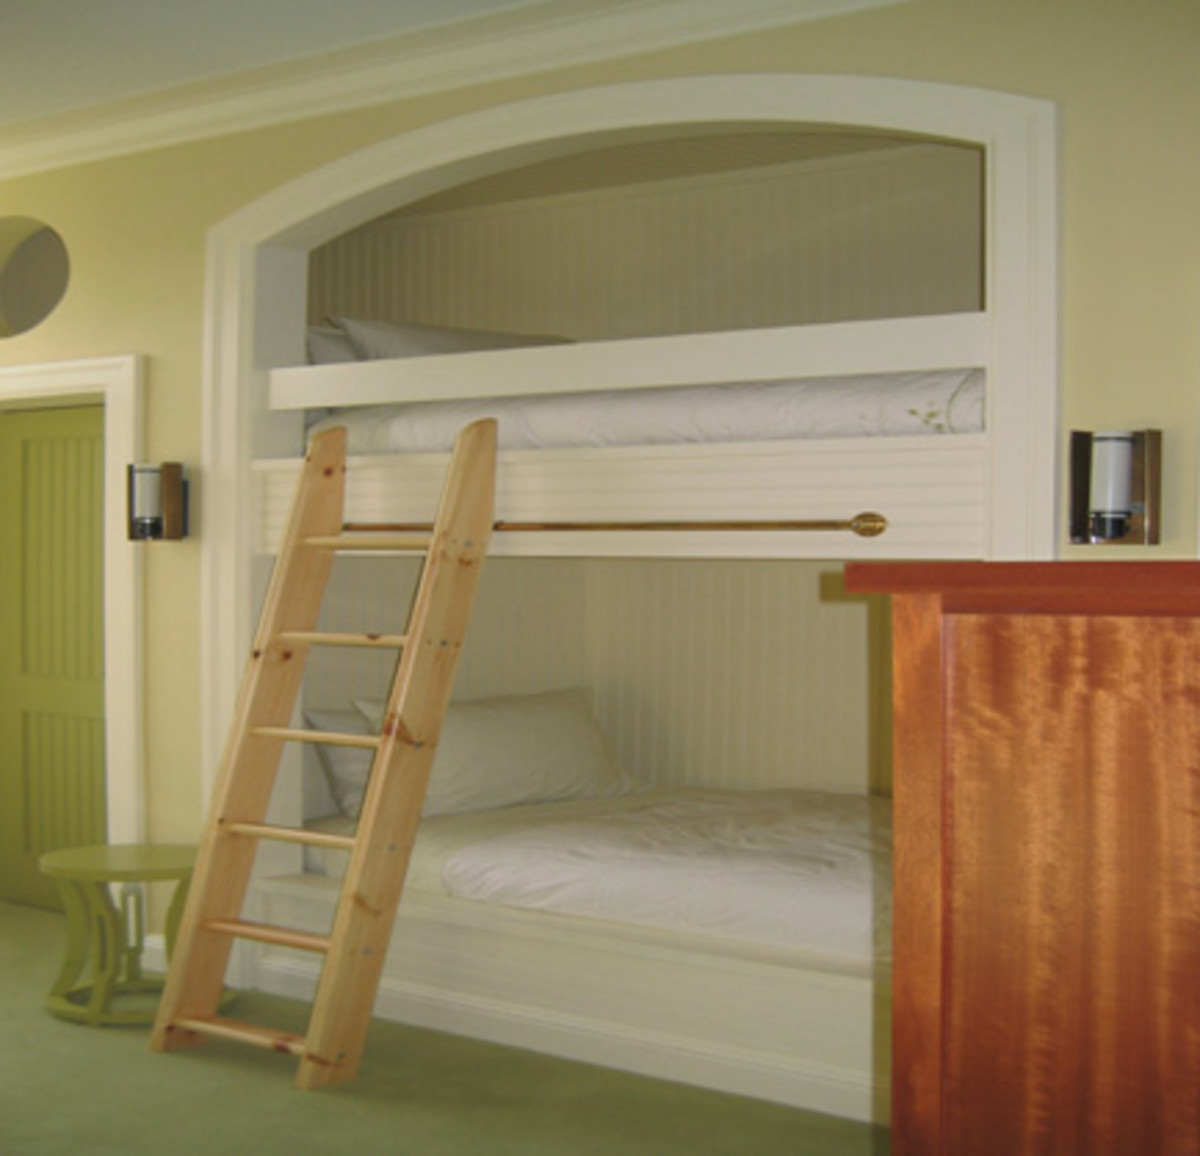 Bunk beds with bedboard